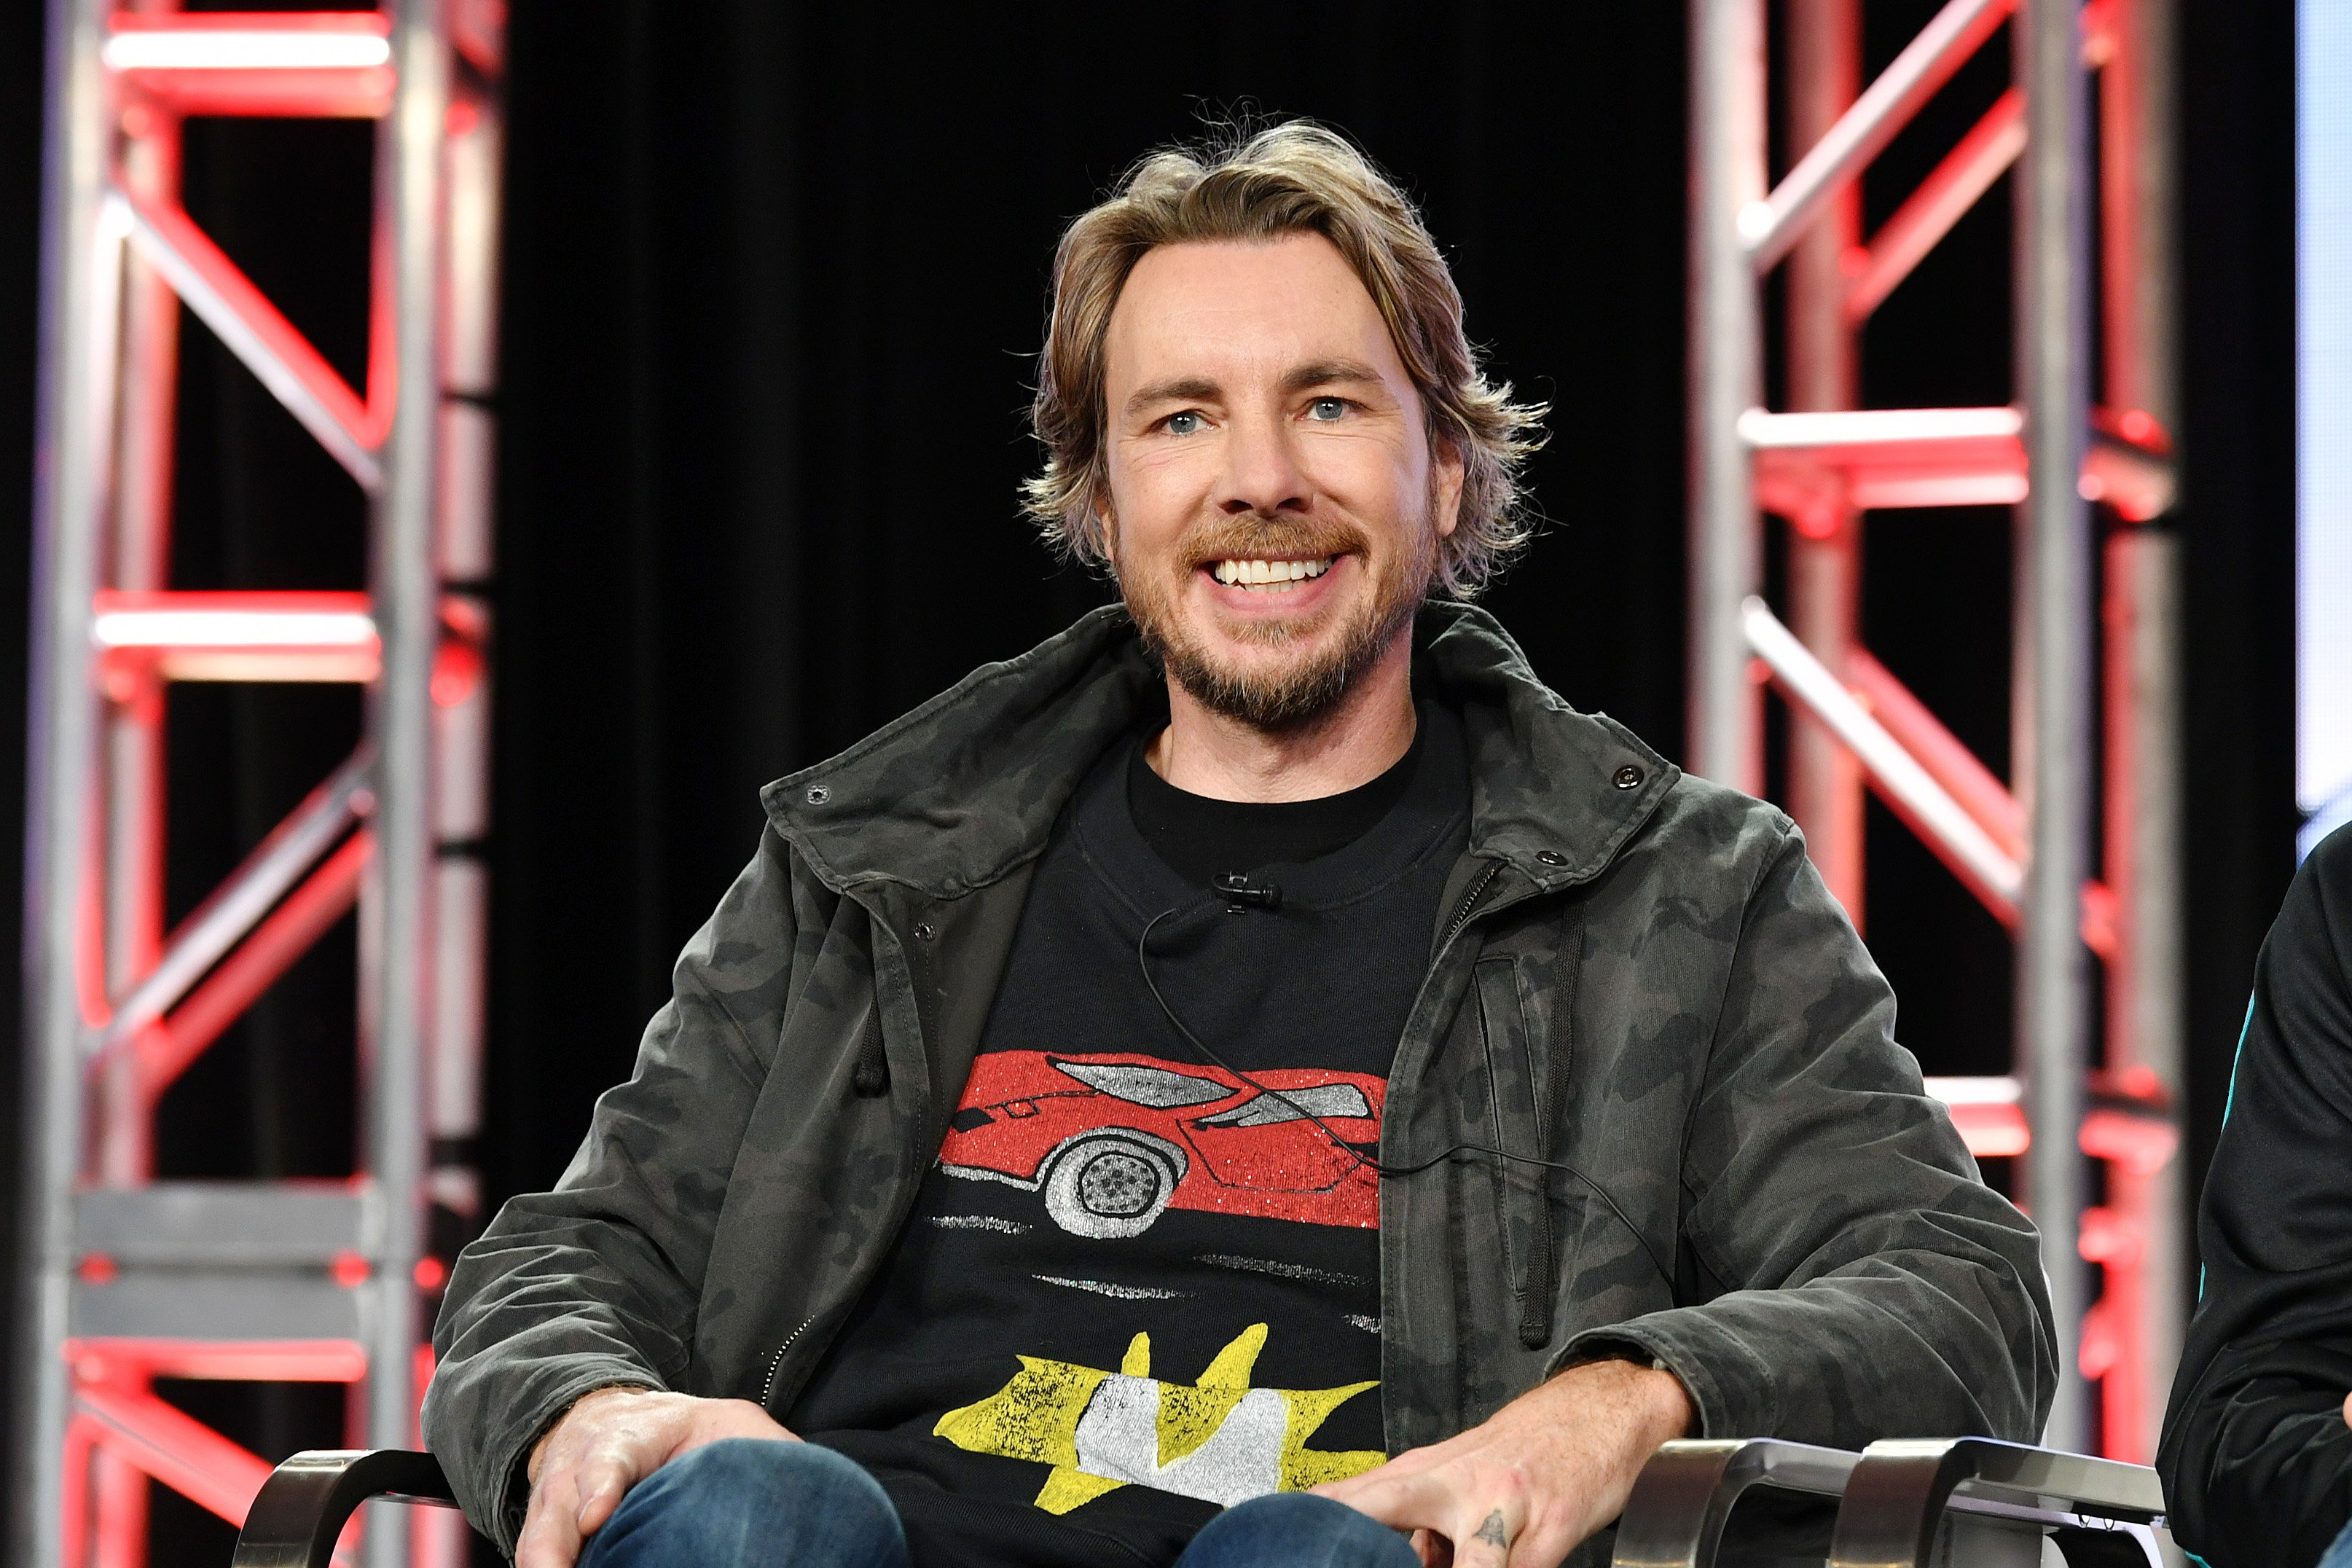 Dax Shepard speaks during the Discovery MotorTrend segment of the 2020 Winter TCA Press Tour on January 16, 2020, in Pasadena, California. | Source: Getty Images.